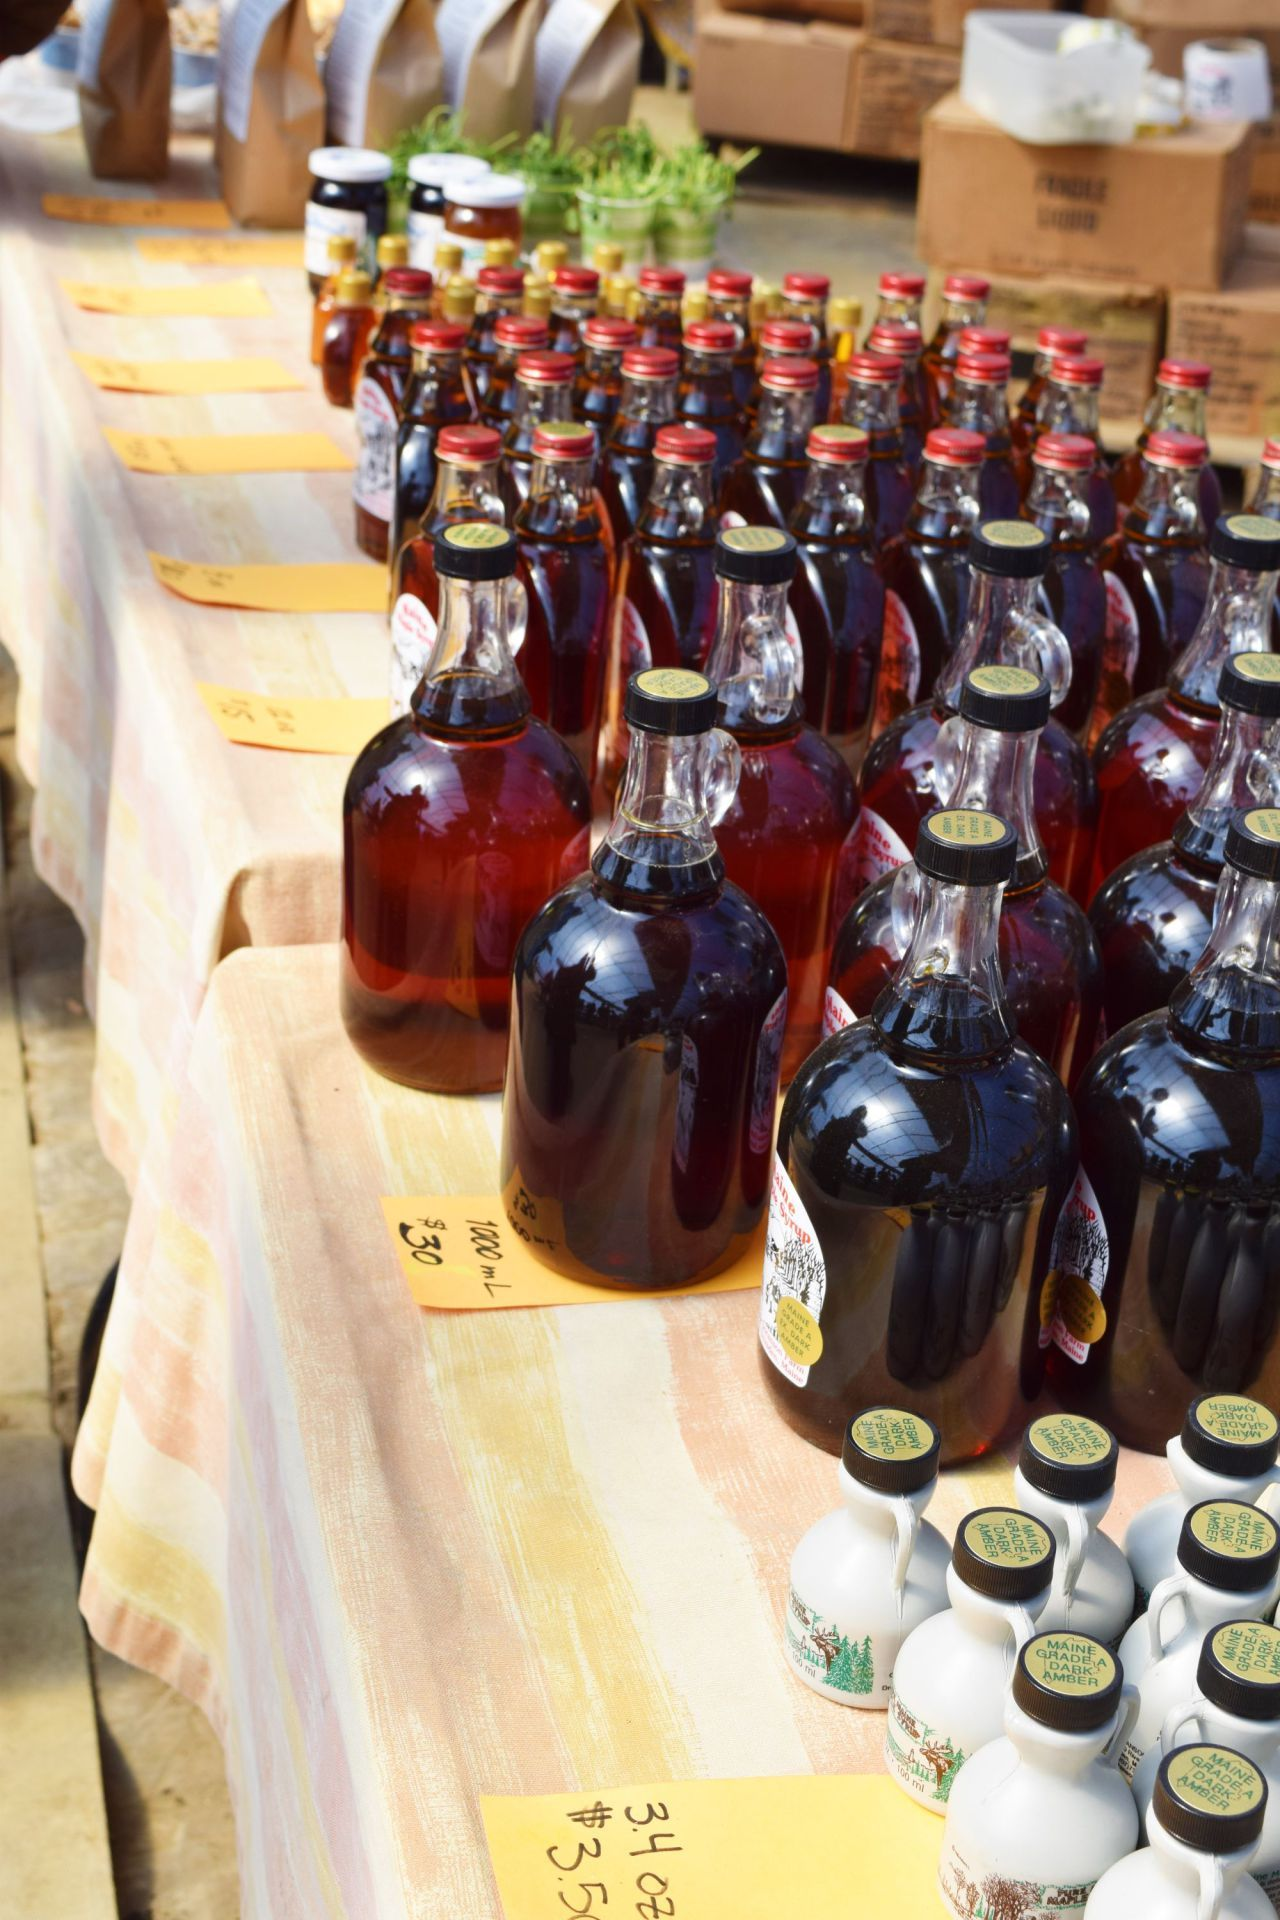 Learn about making maple syrup with awed travelers maple